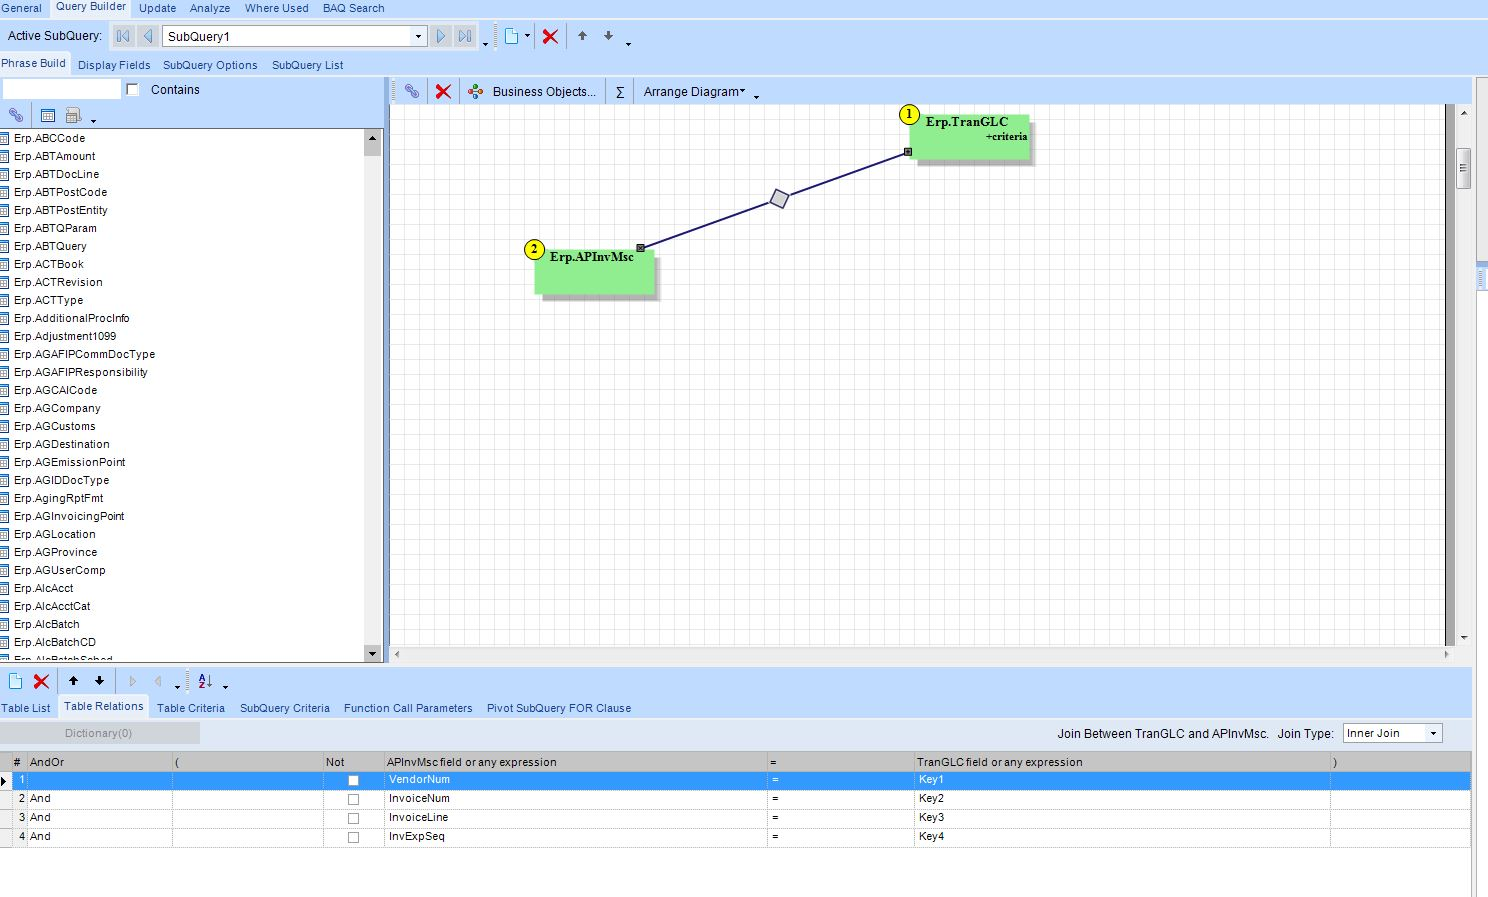 How do you copy an Integer field to a UD String field in the